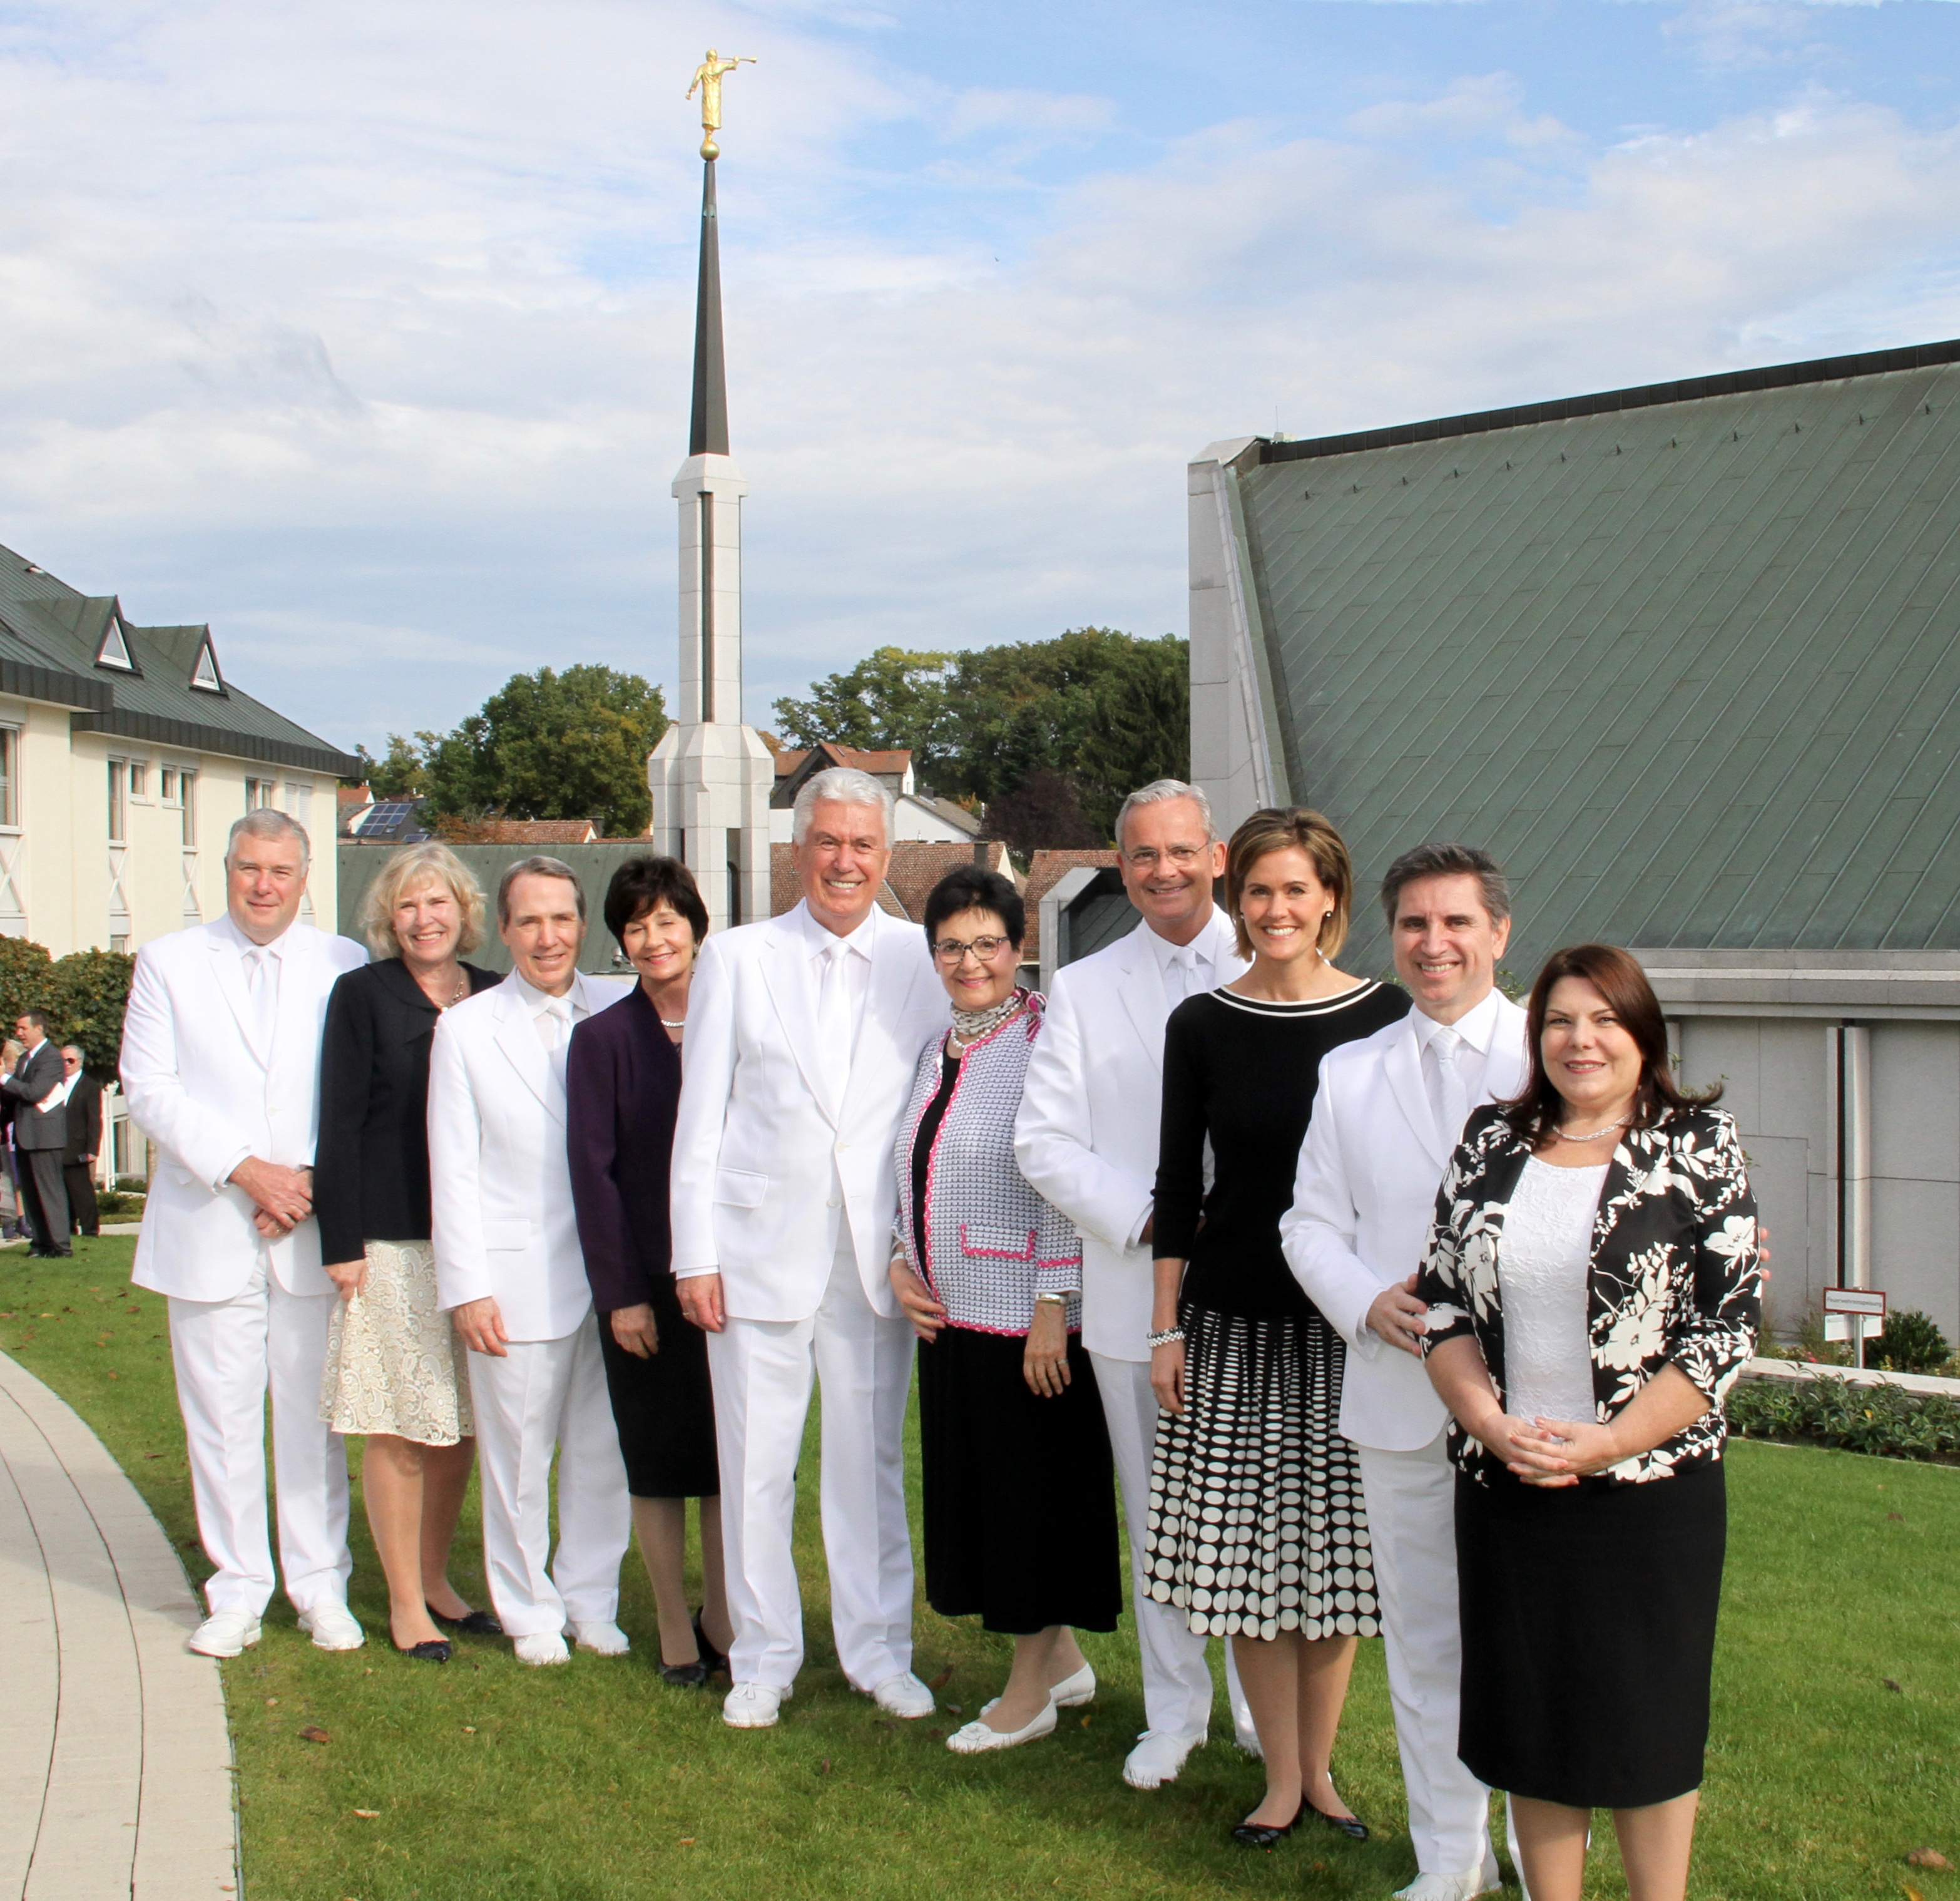 From left: Elder Erich W. Koplischke, Sister Christiane Kopischke, Elder Gary B. Sabin, Sister Valerie Sabin, Elder Dieter F. Uchtdorf, Sister Harriet Uchtdorf, Elder Patrick Kearon, Sister Jennifer Kearon, Elder Massimo De Feo and Sister Loredana De Feo gather for a group photo outside the Frankfurt Germany Temple between rededication sessions on Oct. 20, 2019.